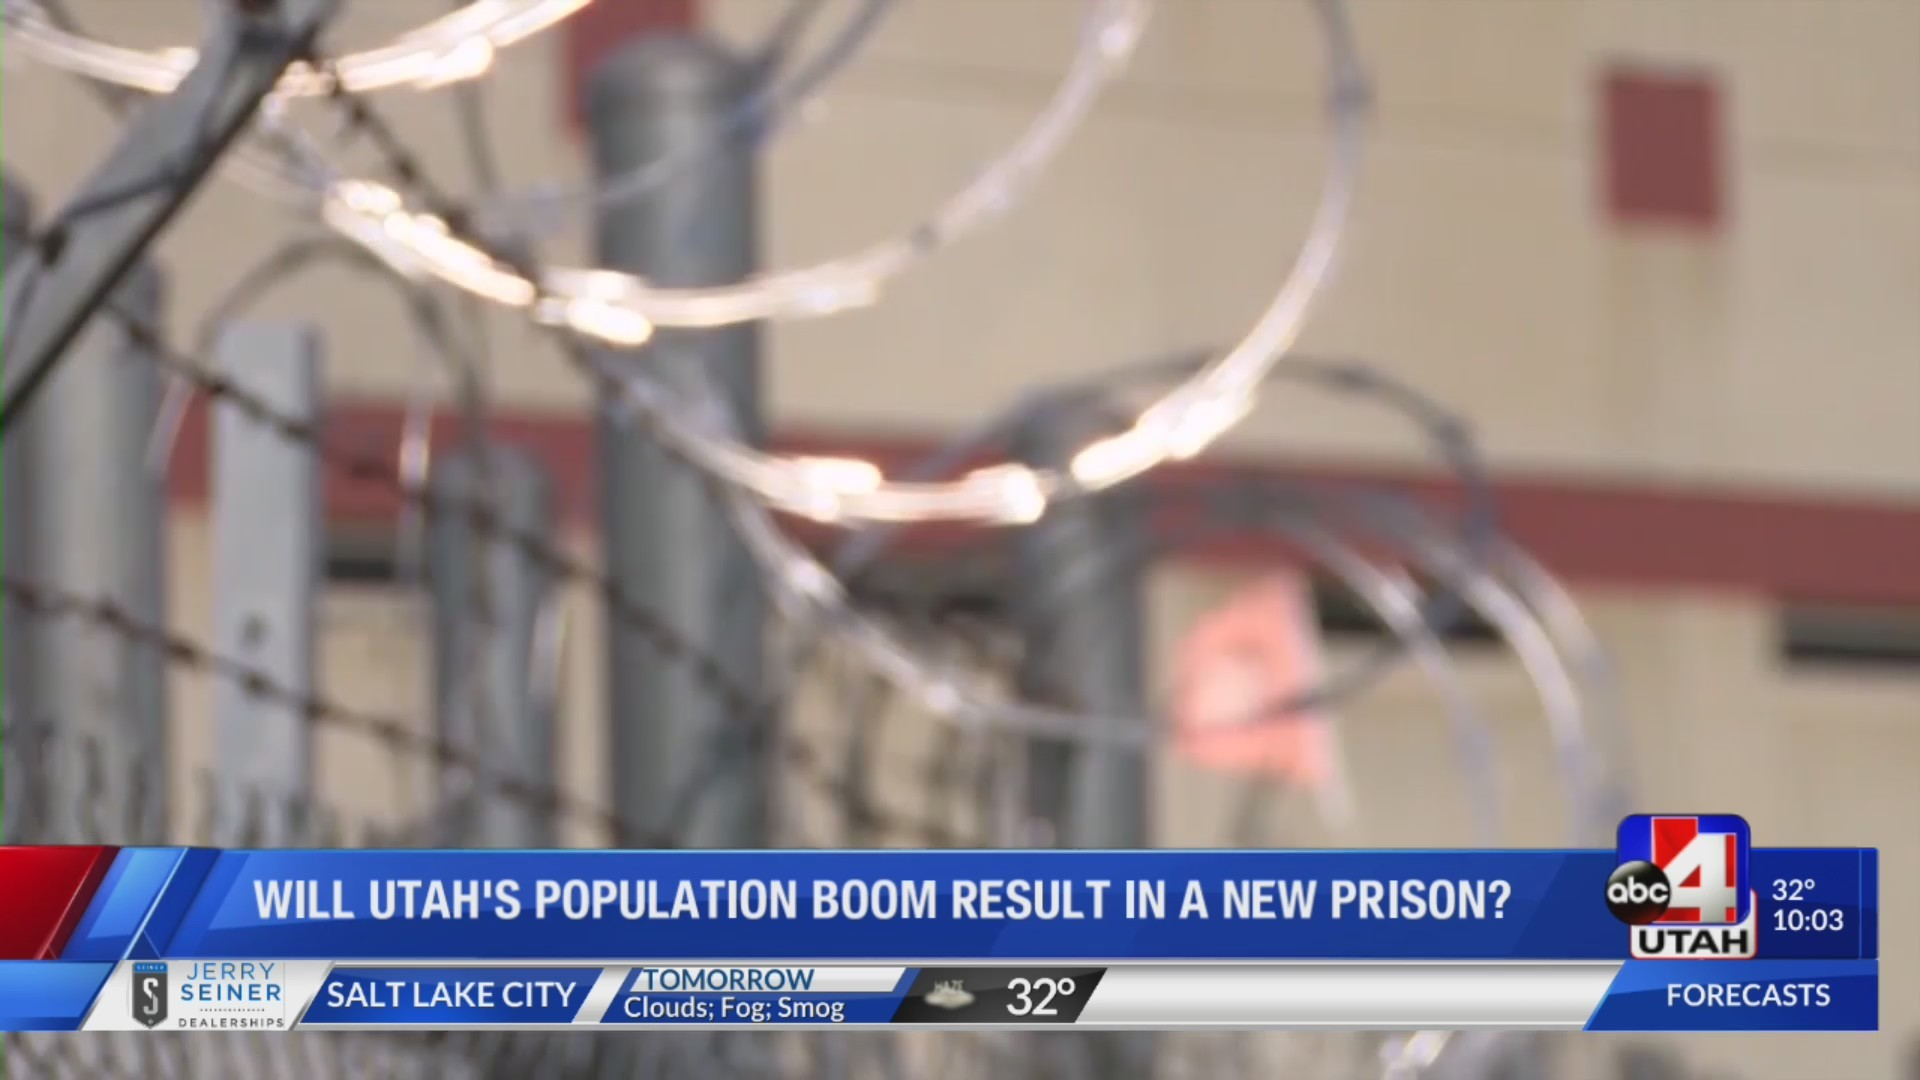 Will Utah's population boom result in new prison?